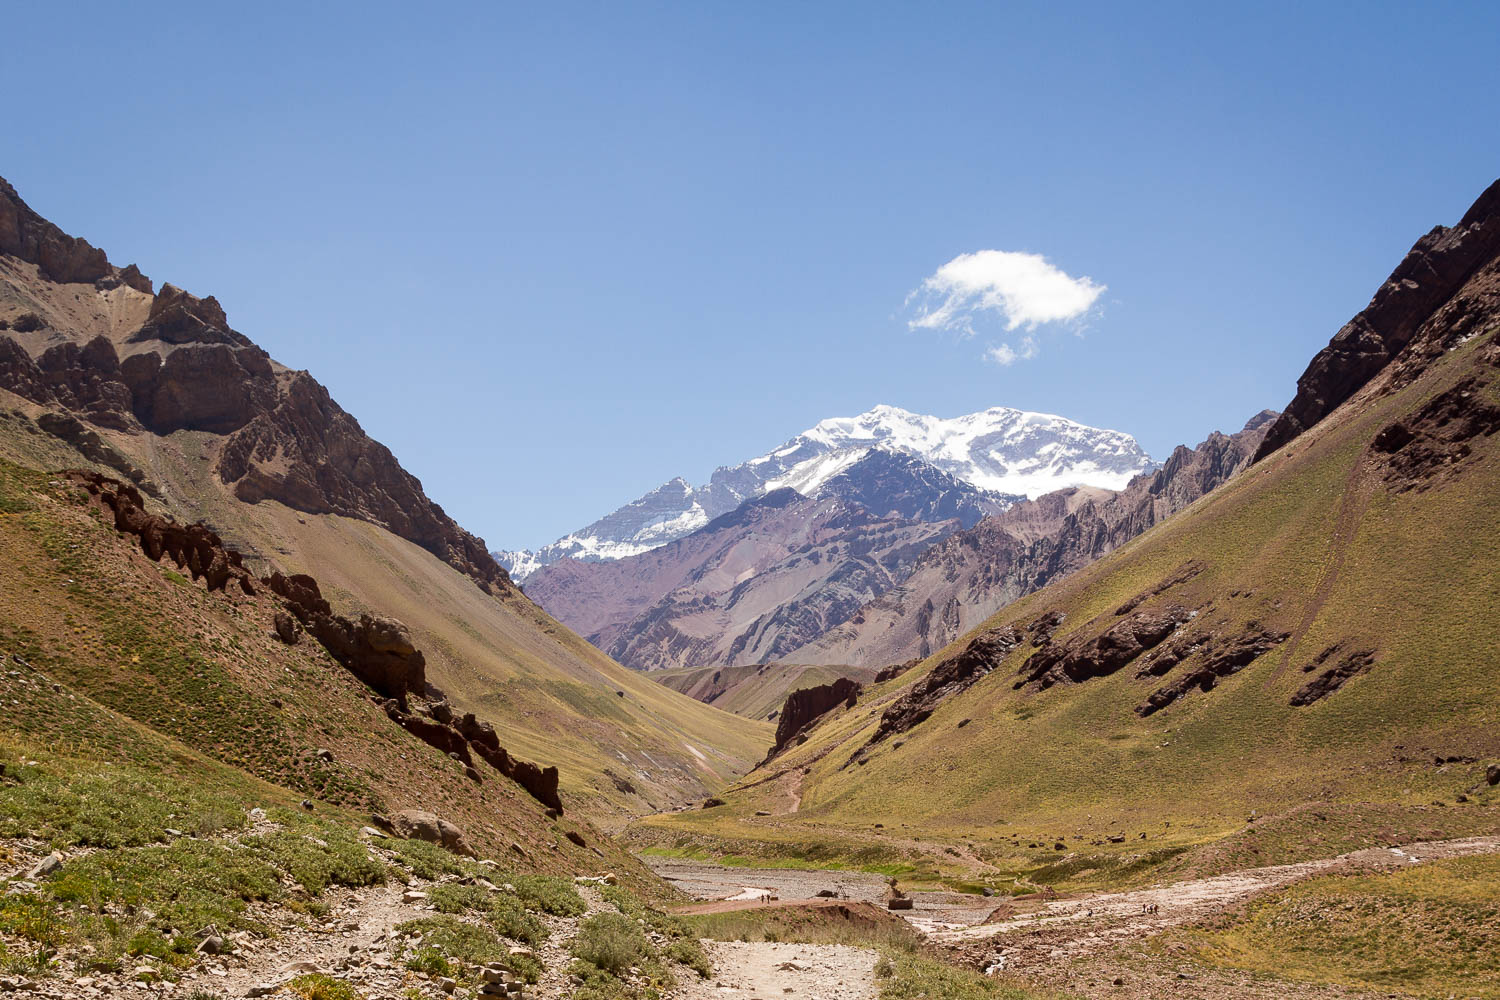 View of Aconcagua